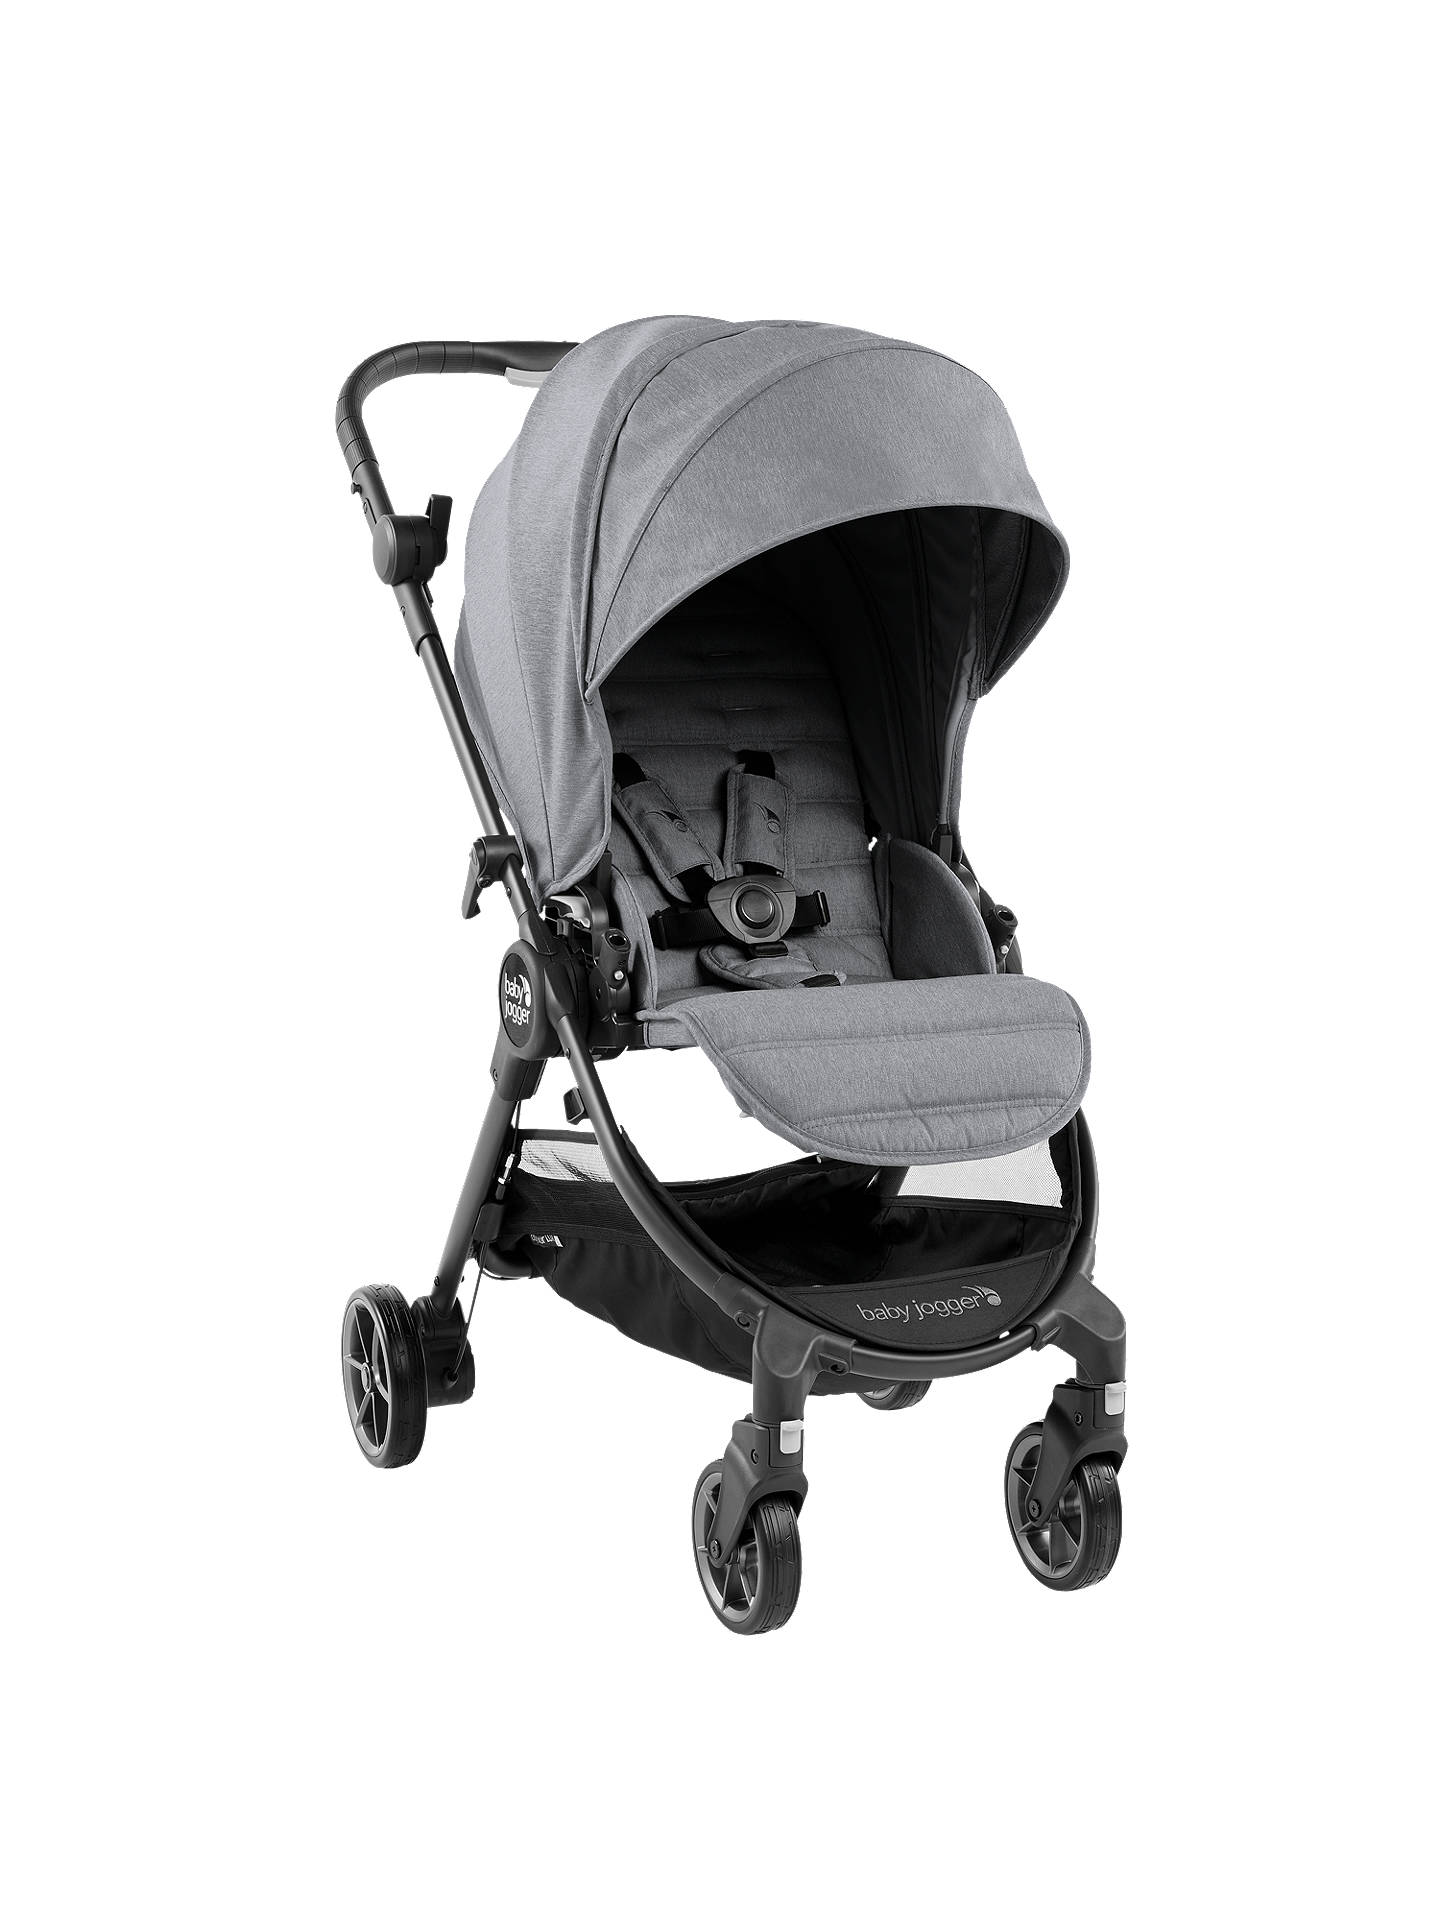 BuyBaby Jogger City Tour LUX Pushchair, Slate Online at johnlewis.com